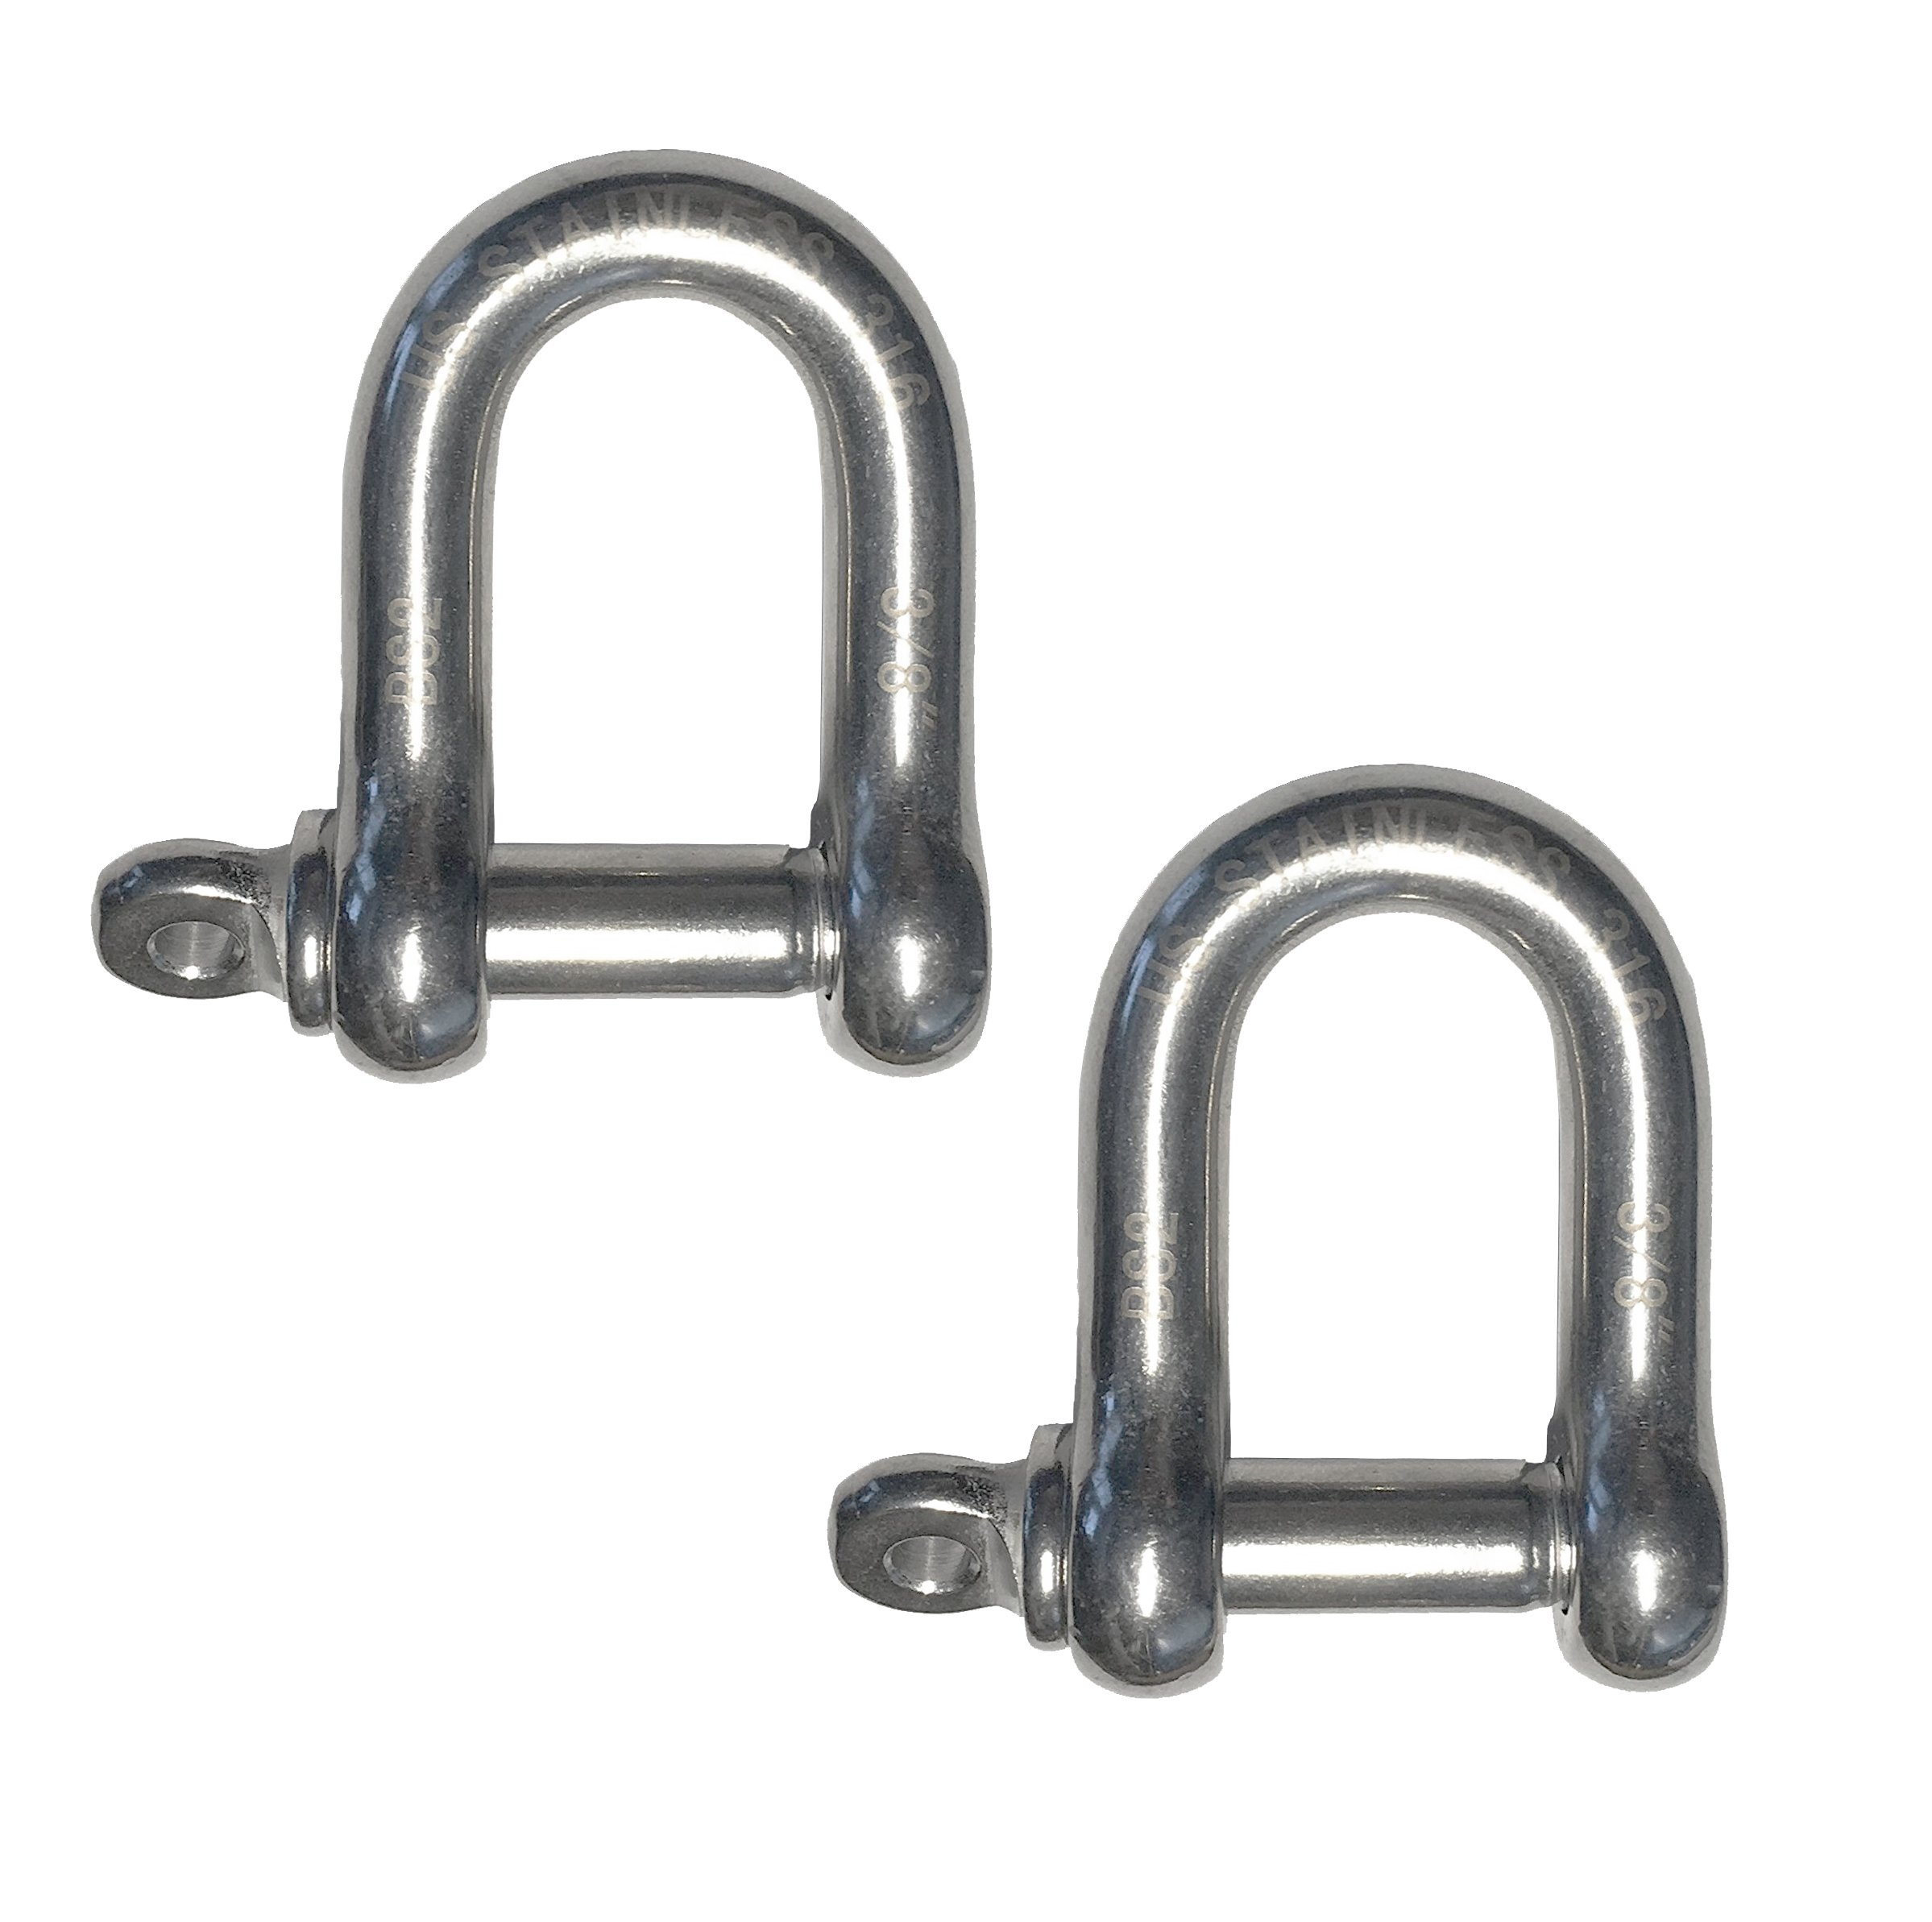 2 Pieces Stainless Steel 316 Forged D Shackle Marine Grade 3/8'' (10mm) Dee